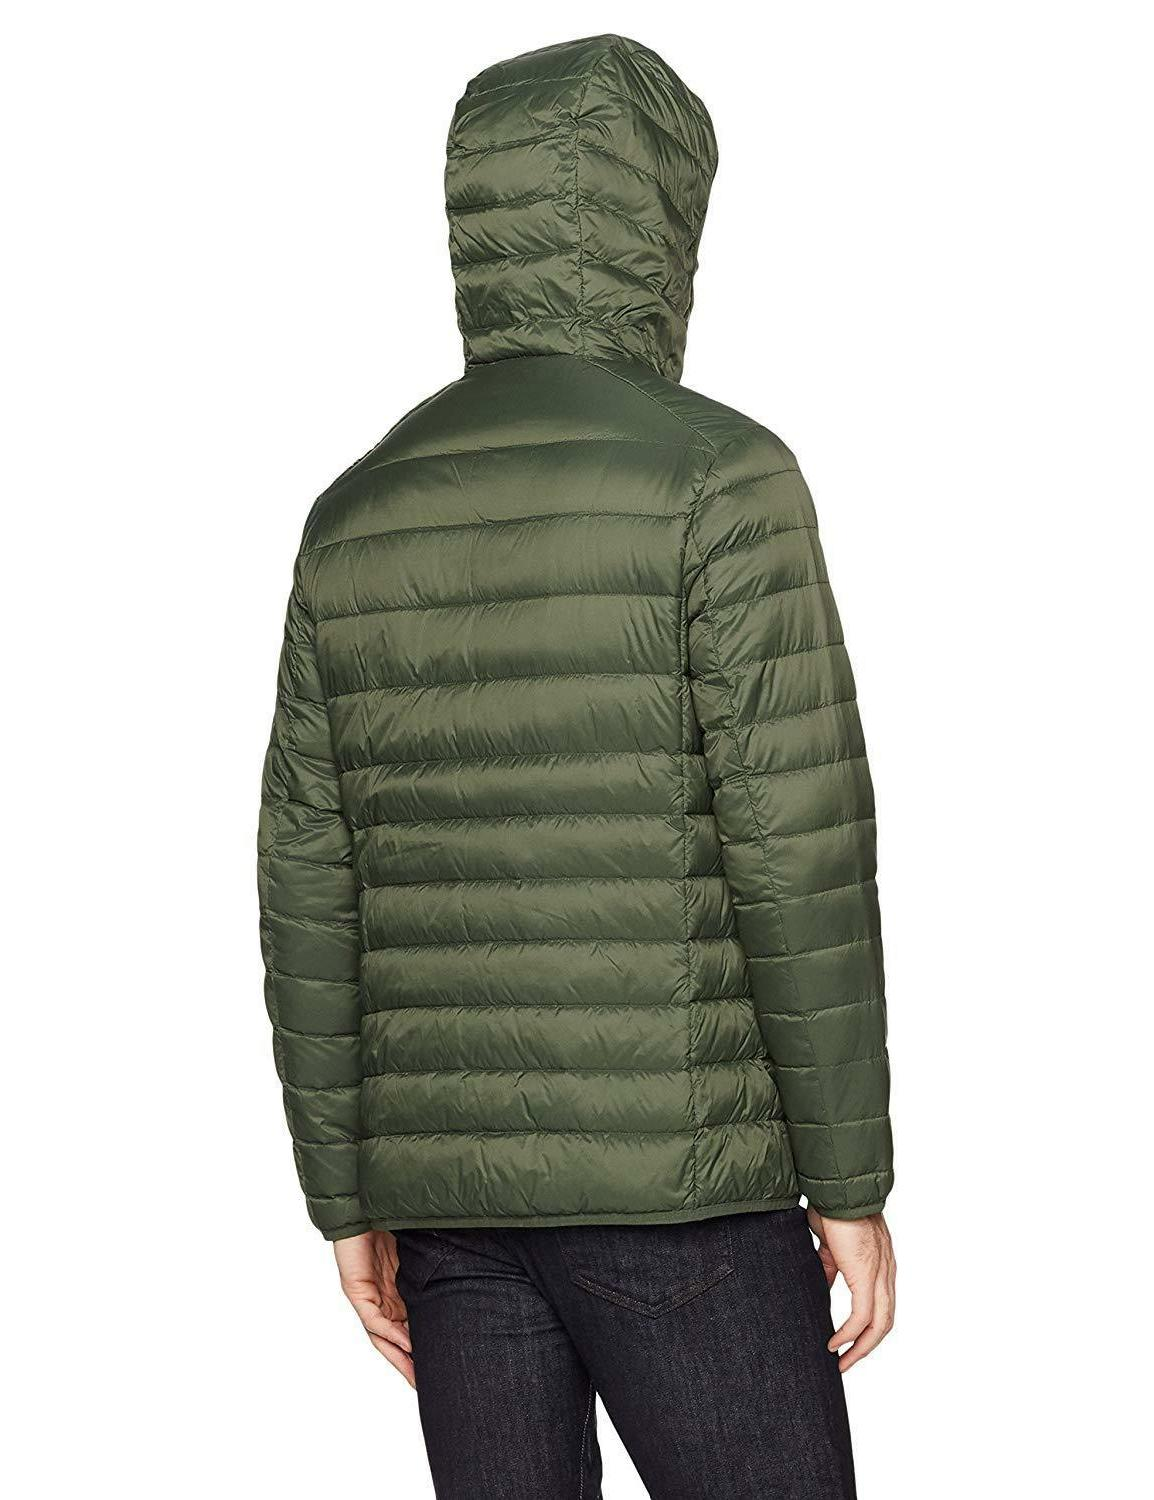 Amazon Essentials Water-Resistant Packable Hooded Jacket